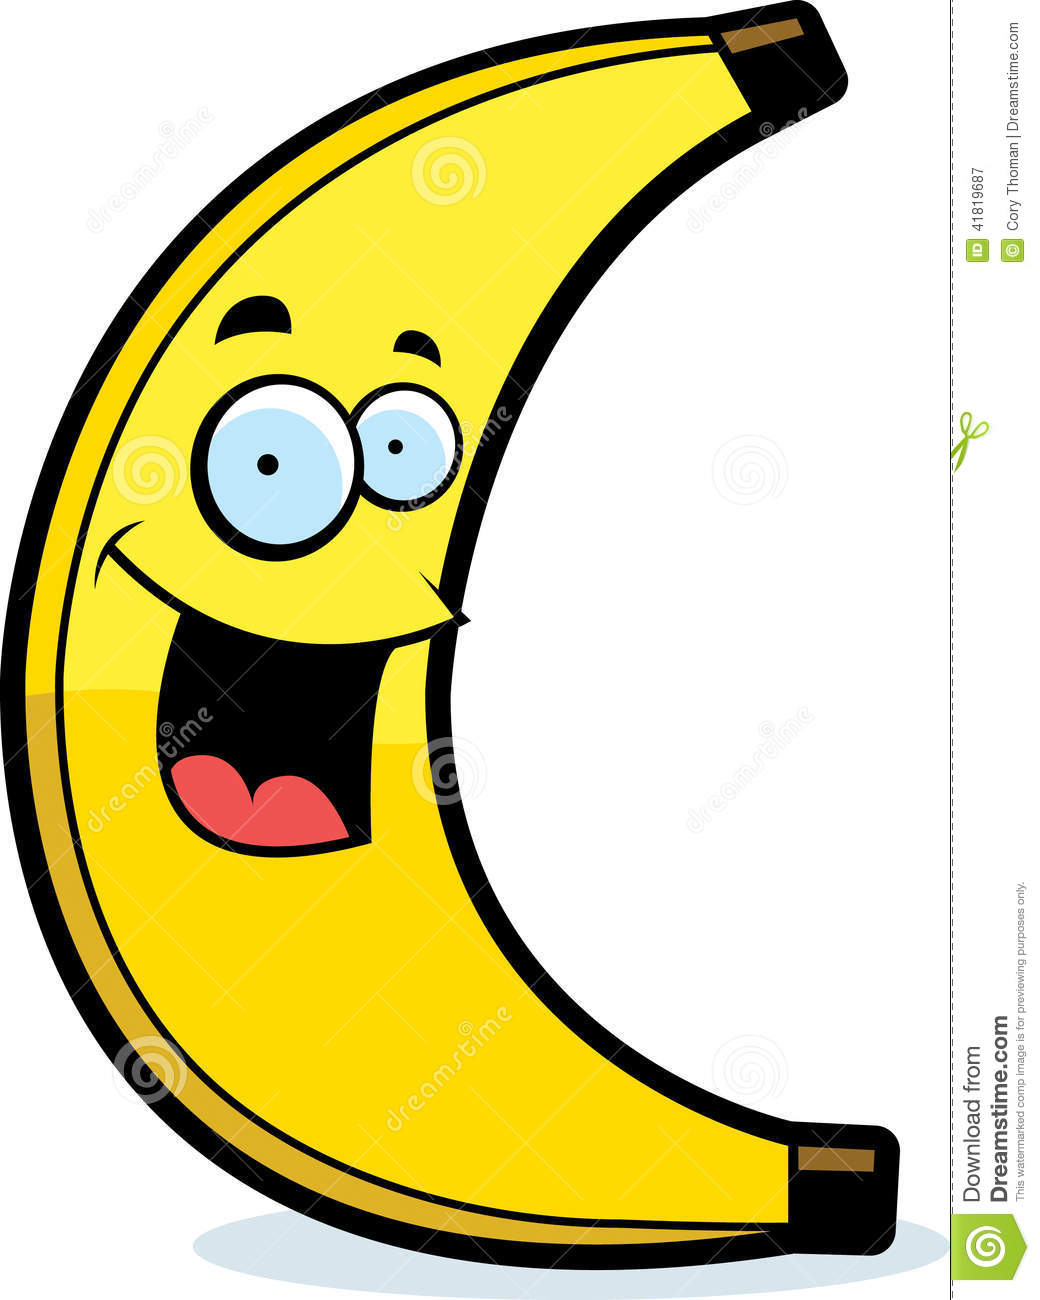 Cartoon Banana Smiling Stock Vector - Image: 41819687